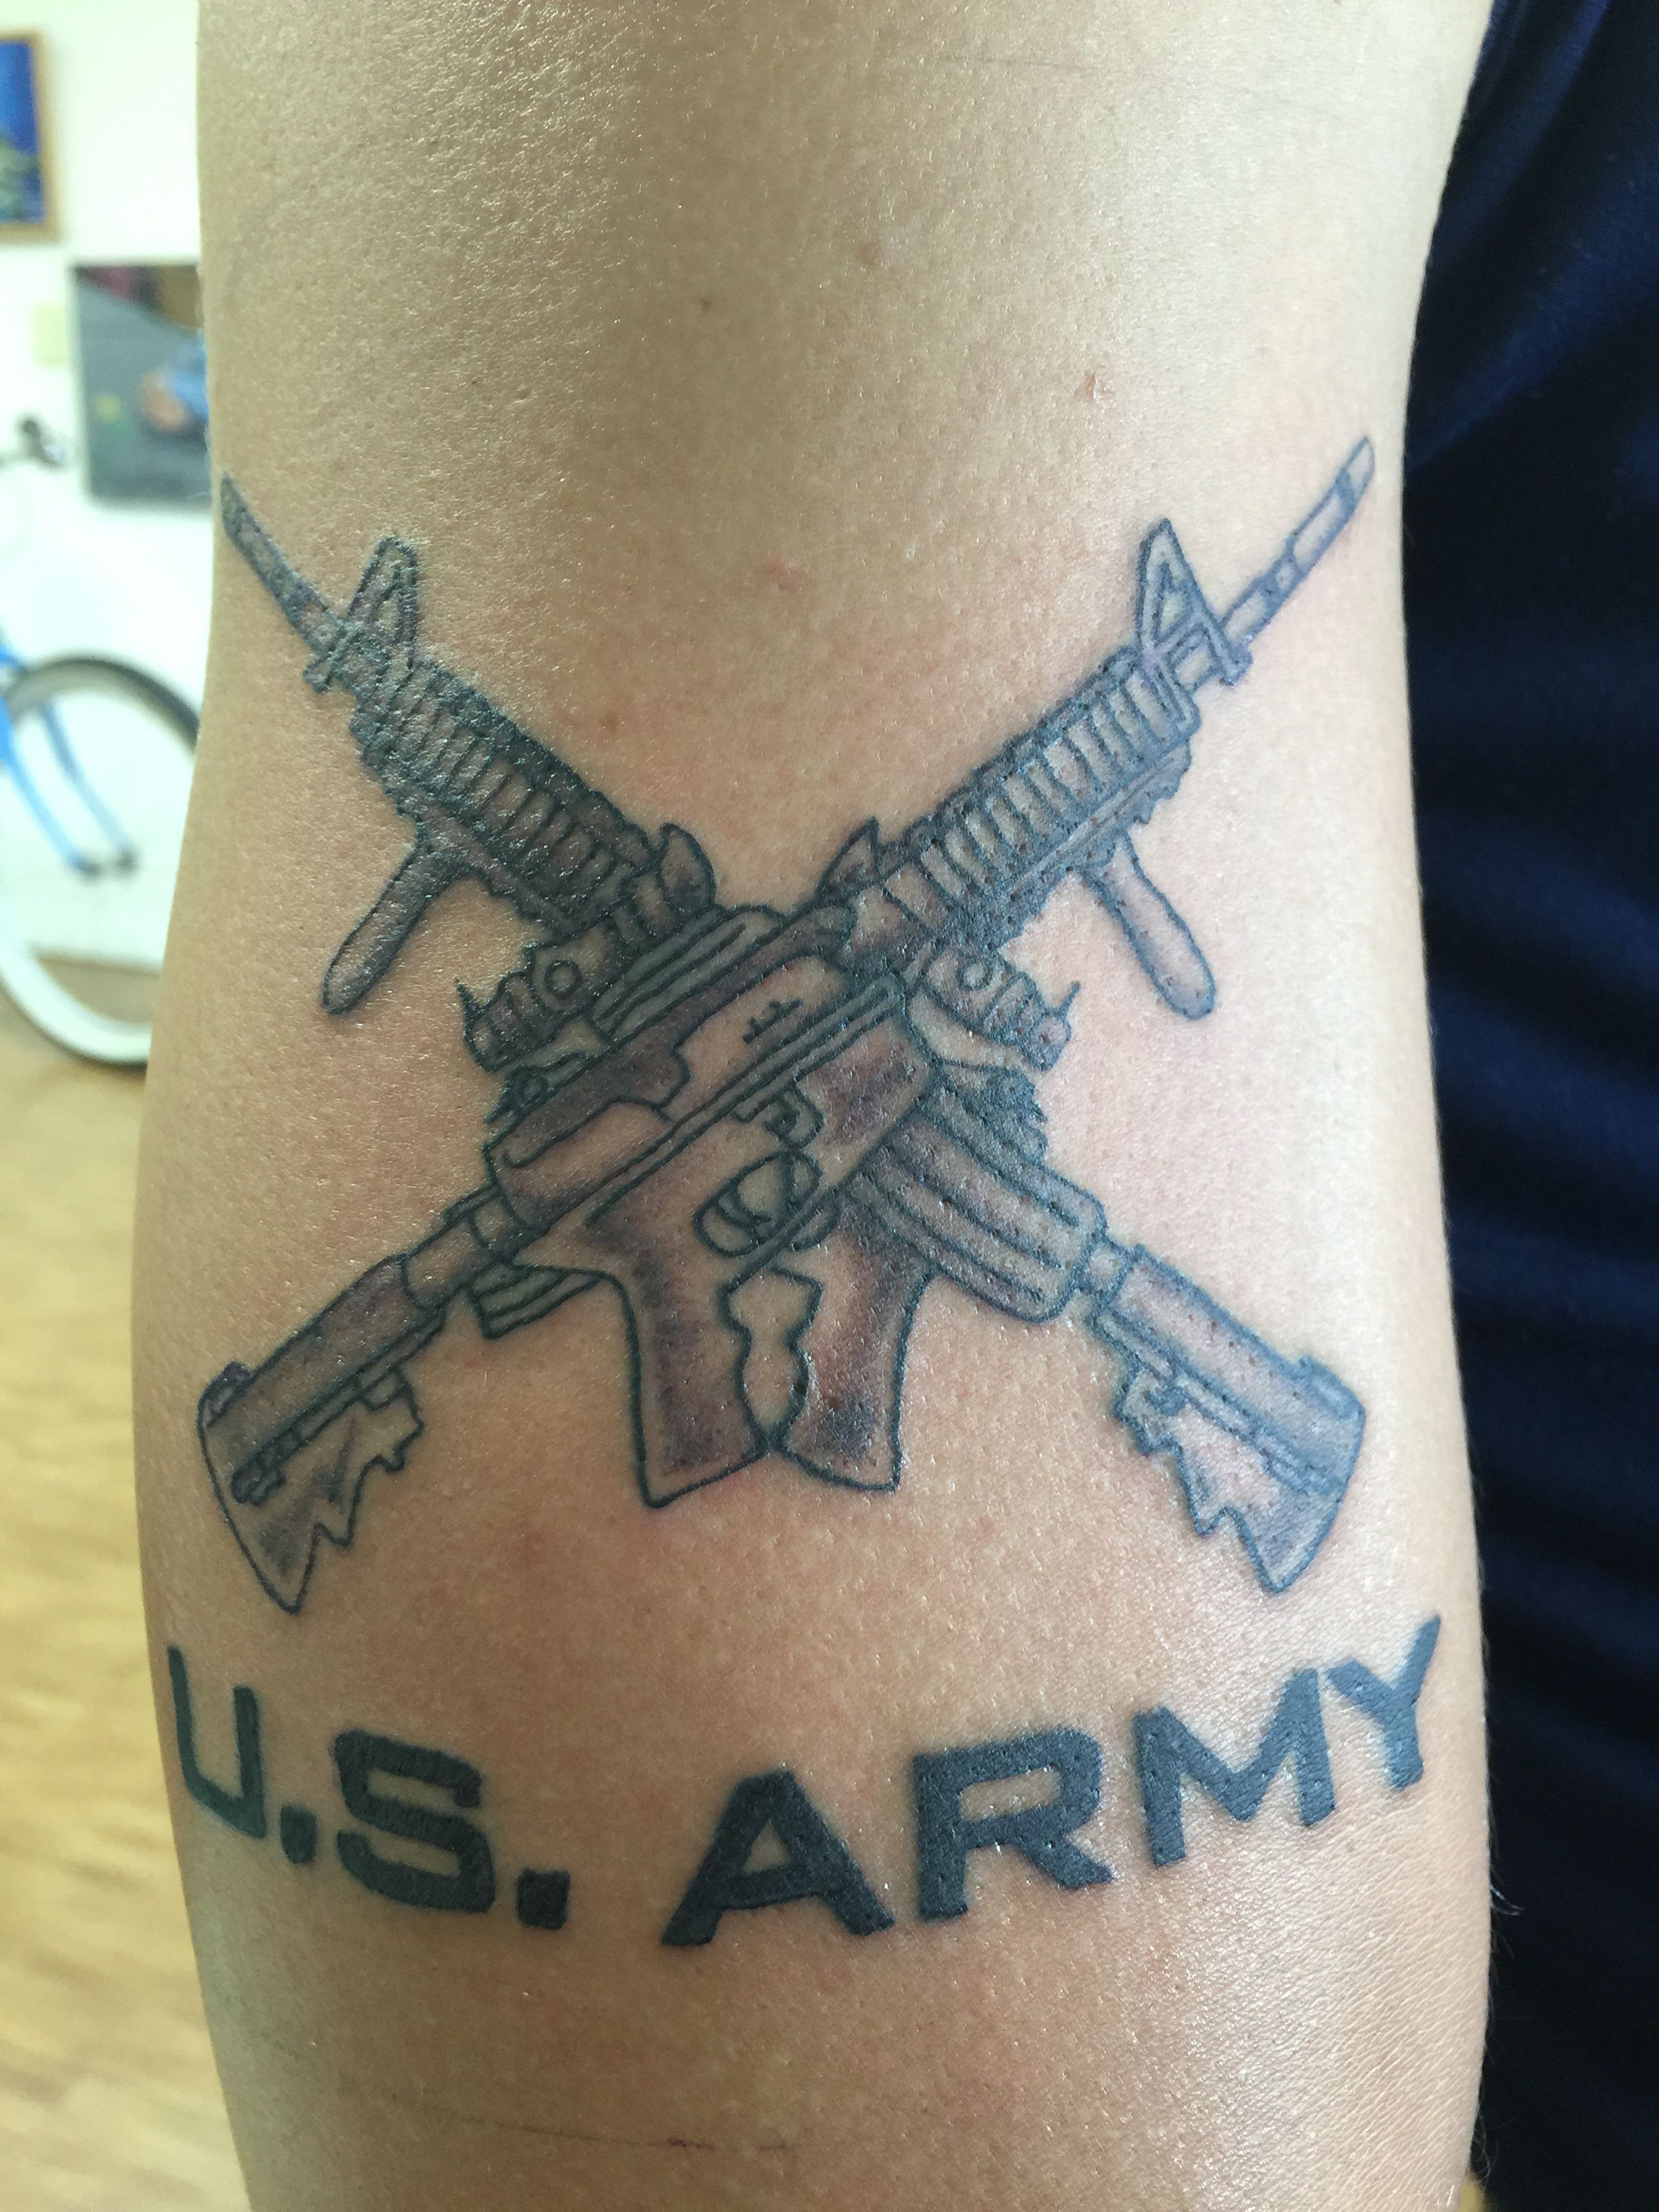 Us Army Crossed Rifles And Script Tattoo By Orlando Socarras Tattoos Tattoo Script Army Tattoos